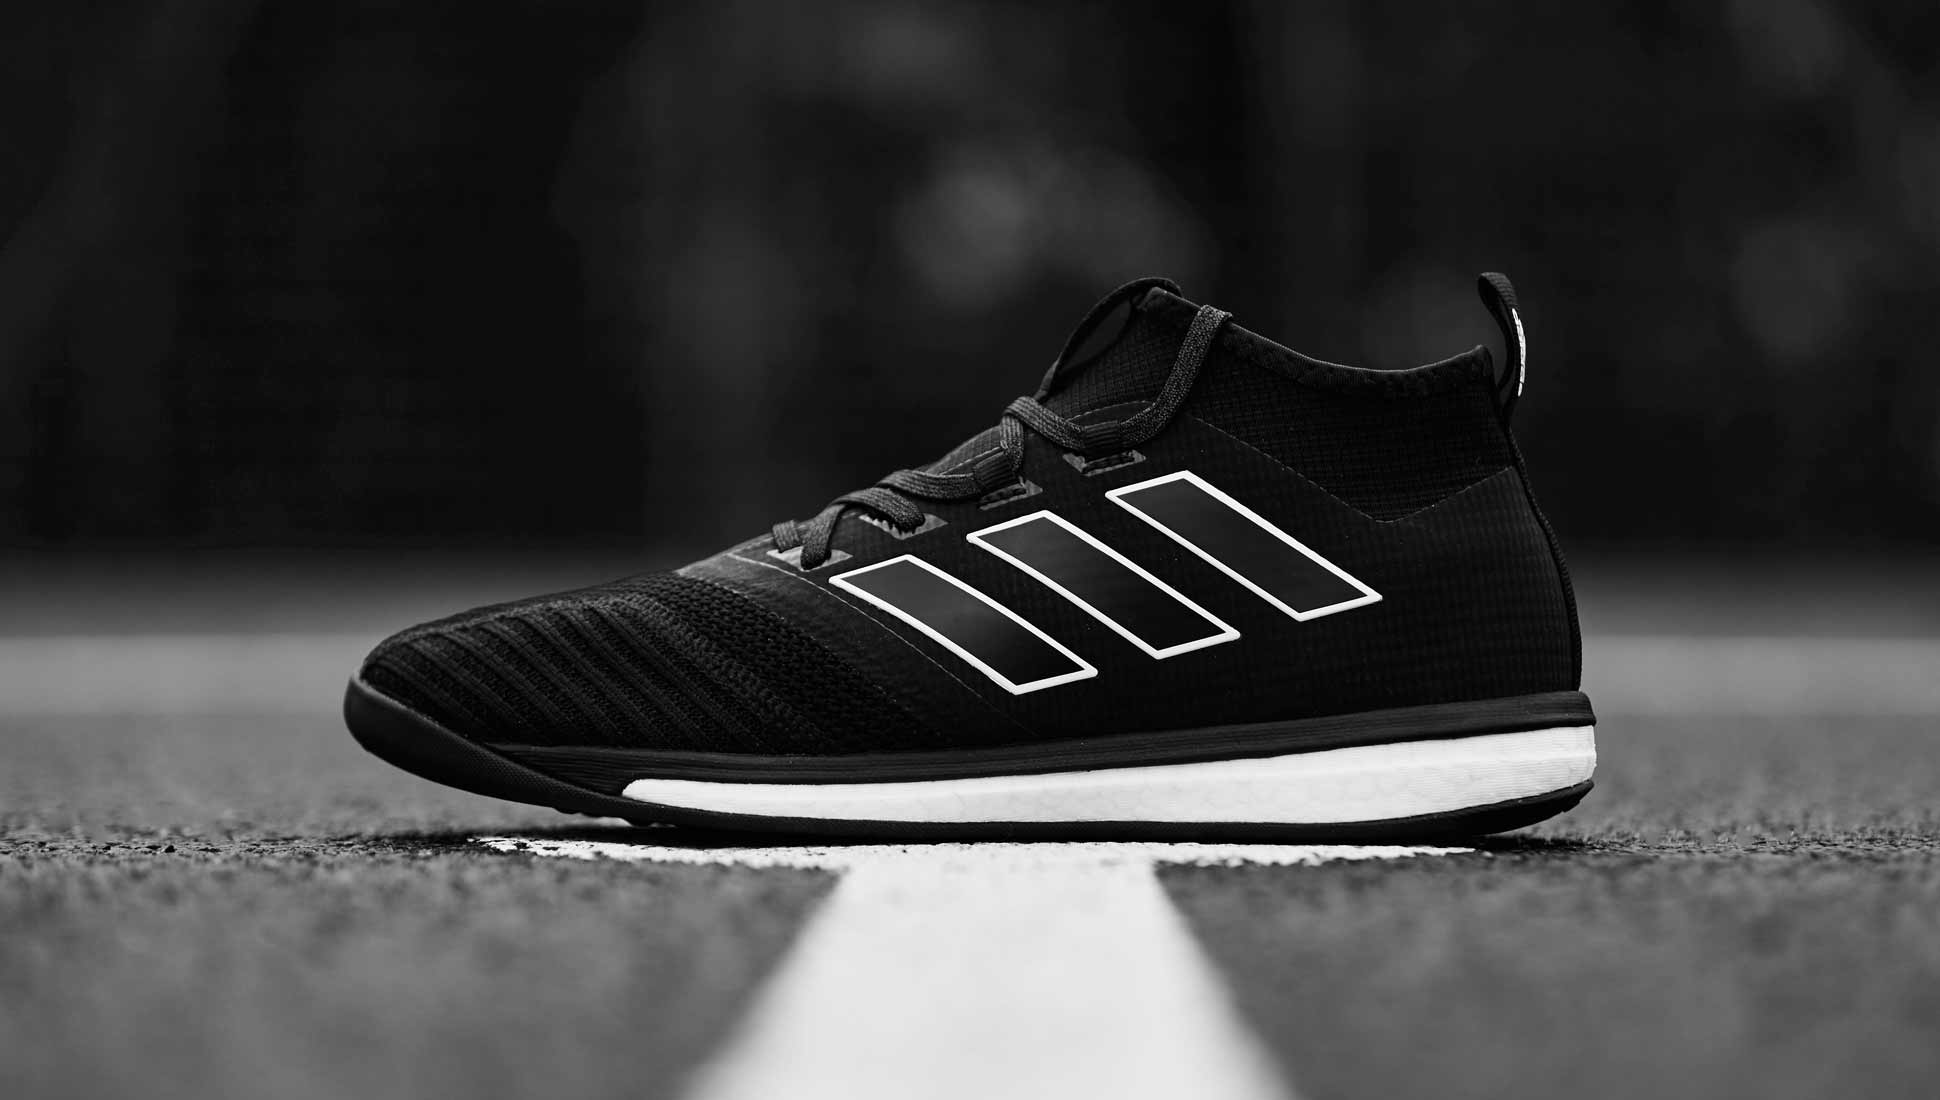 picked up competitive price san francisco adidas ACE 17.1 Tango Football Trainers - SoccerBible